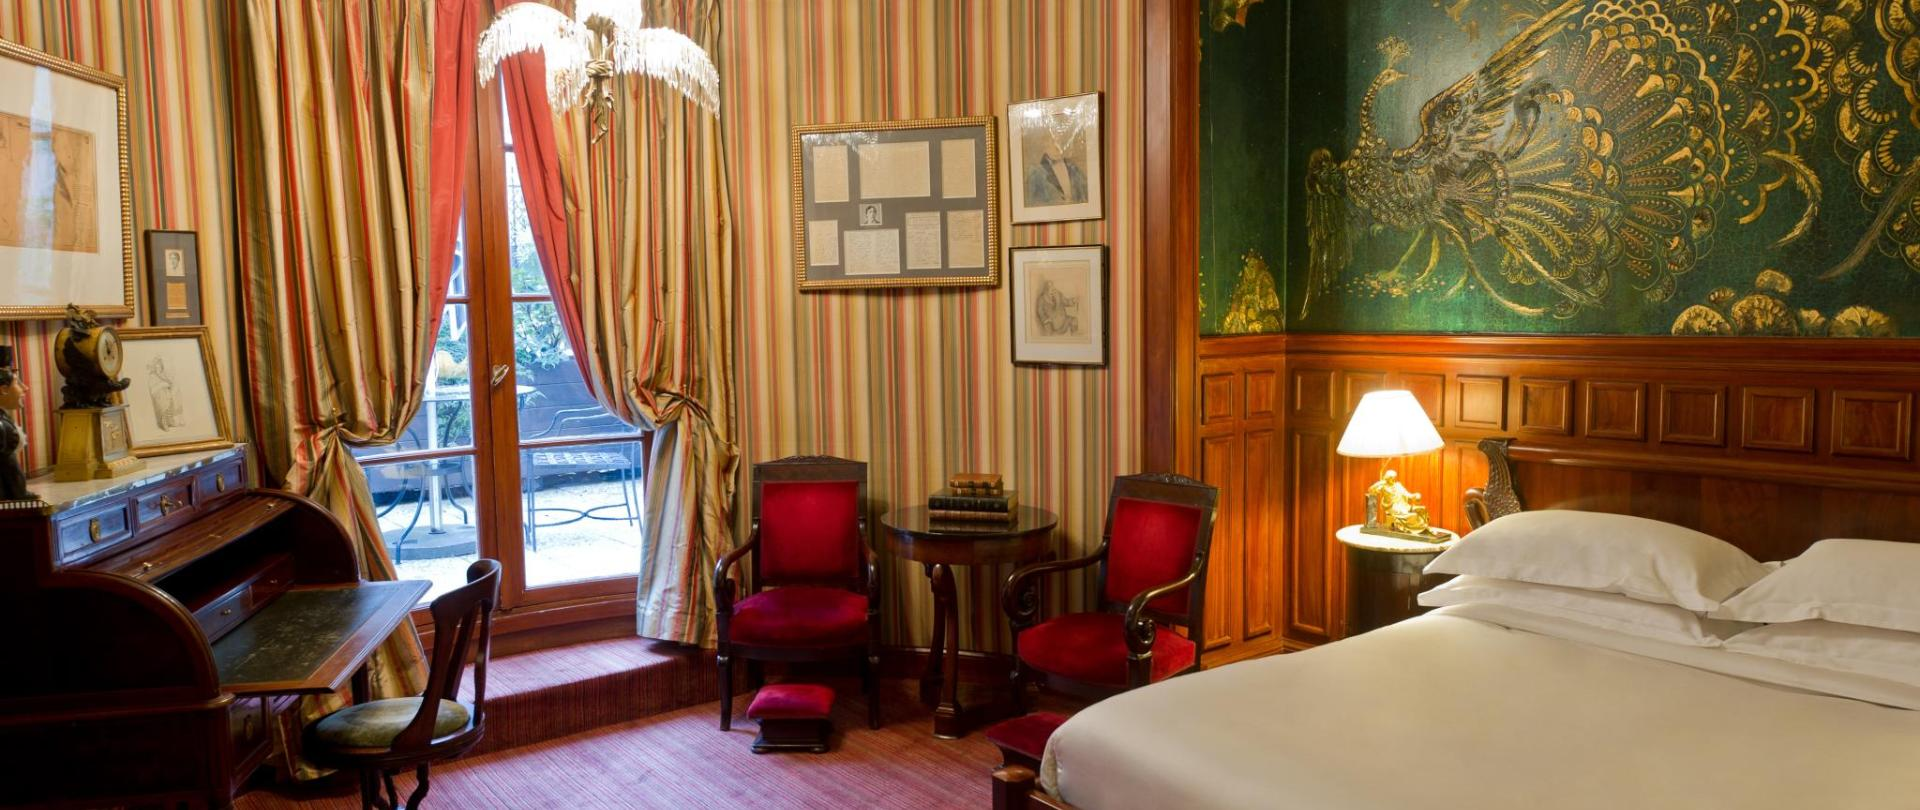 L_Hotel_Paris_Oscar_Wilde_Suite